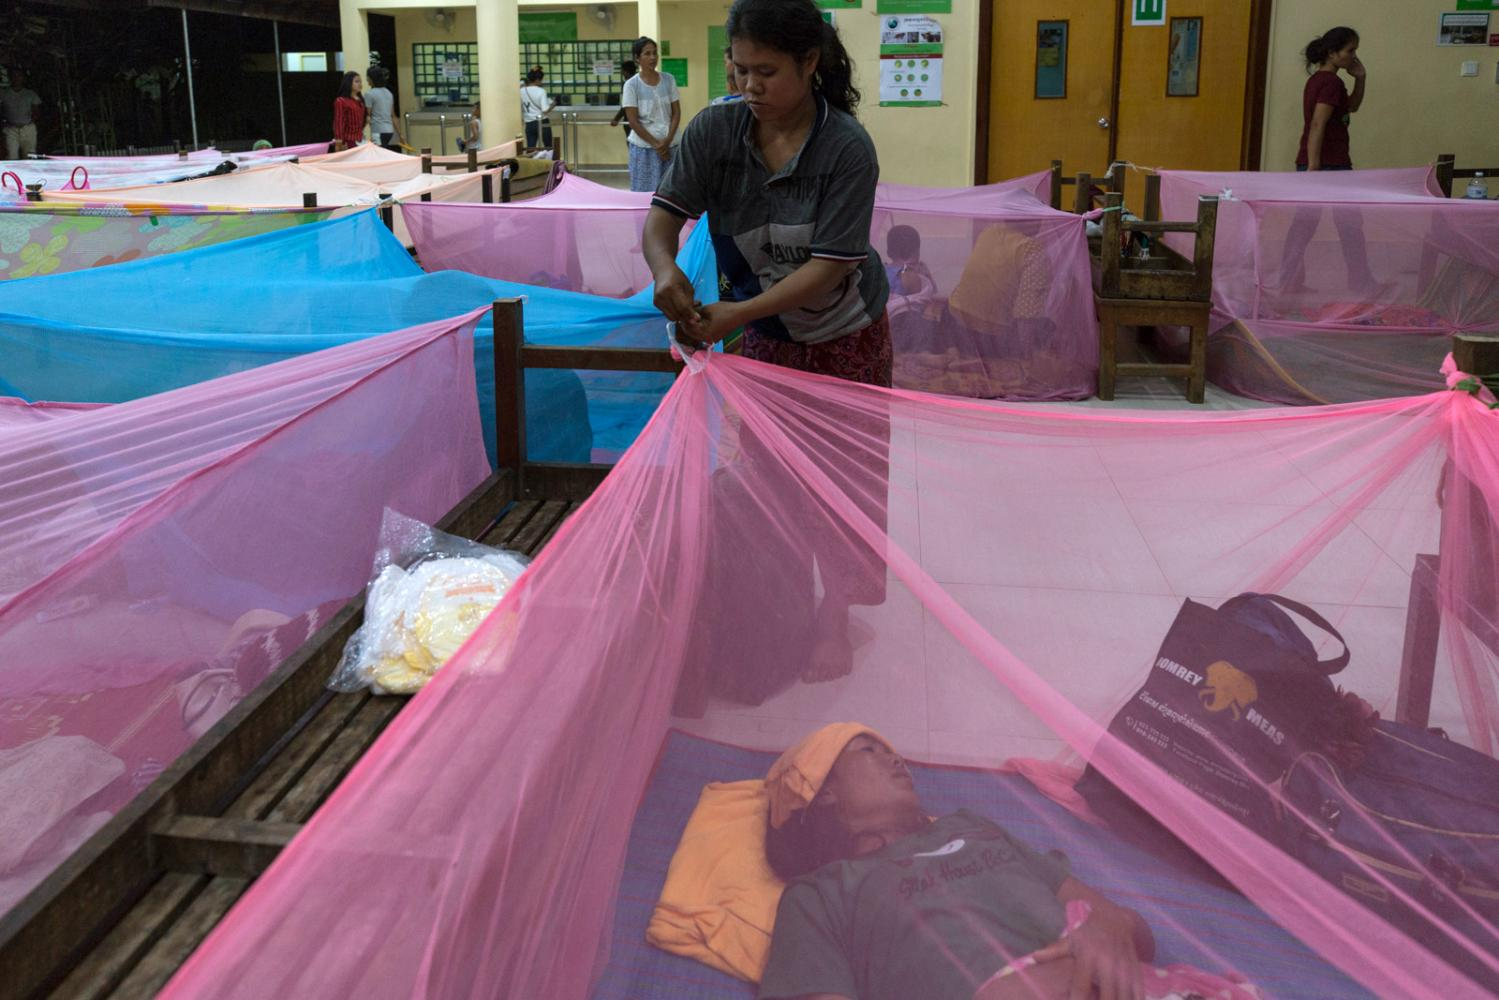 For those patients who travel long distances to visit the Angkor Hospital for Children, they are allowed to sleep on premises. As night falls mosquito nets are given out to everyone who will set them up outside the main hospital building. Siem Reap, Cambodia - October 2019